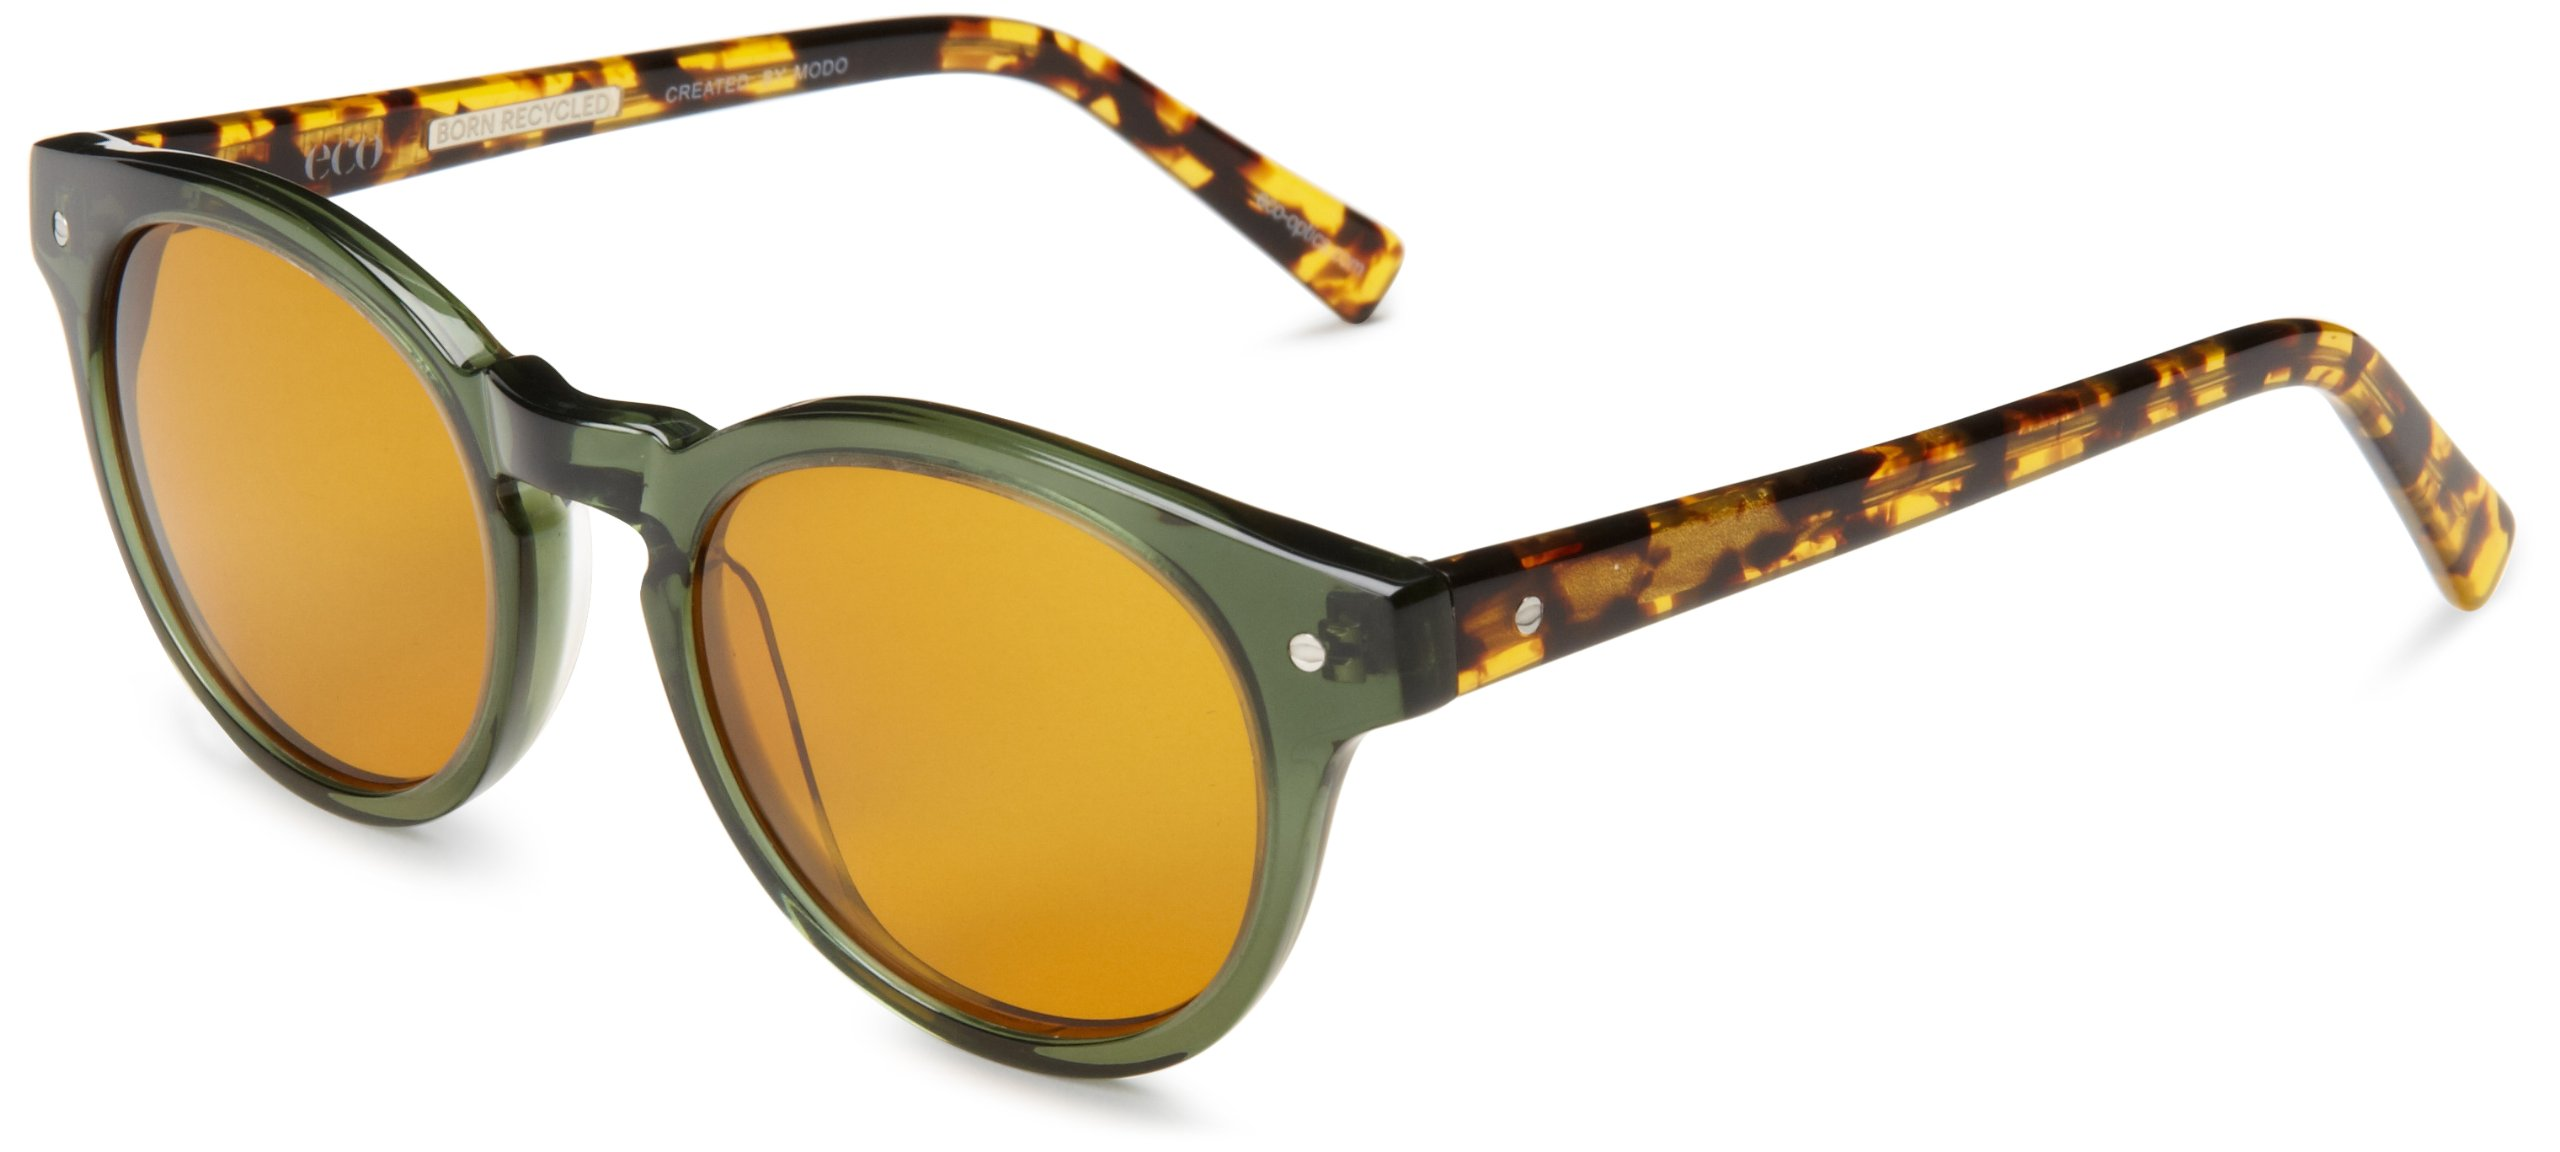 eco Dubai Round Sunglasses, Forest, 50 mm